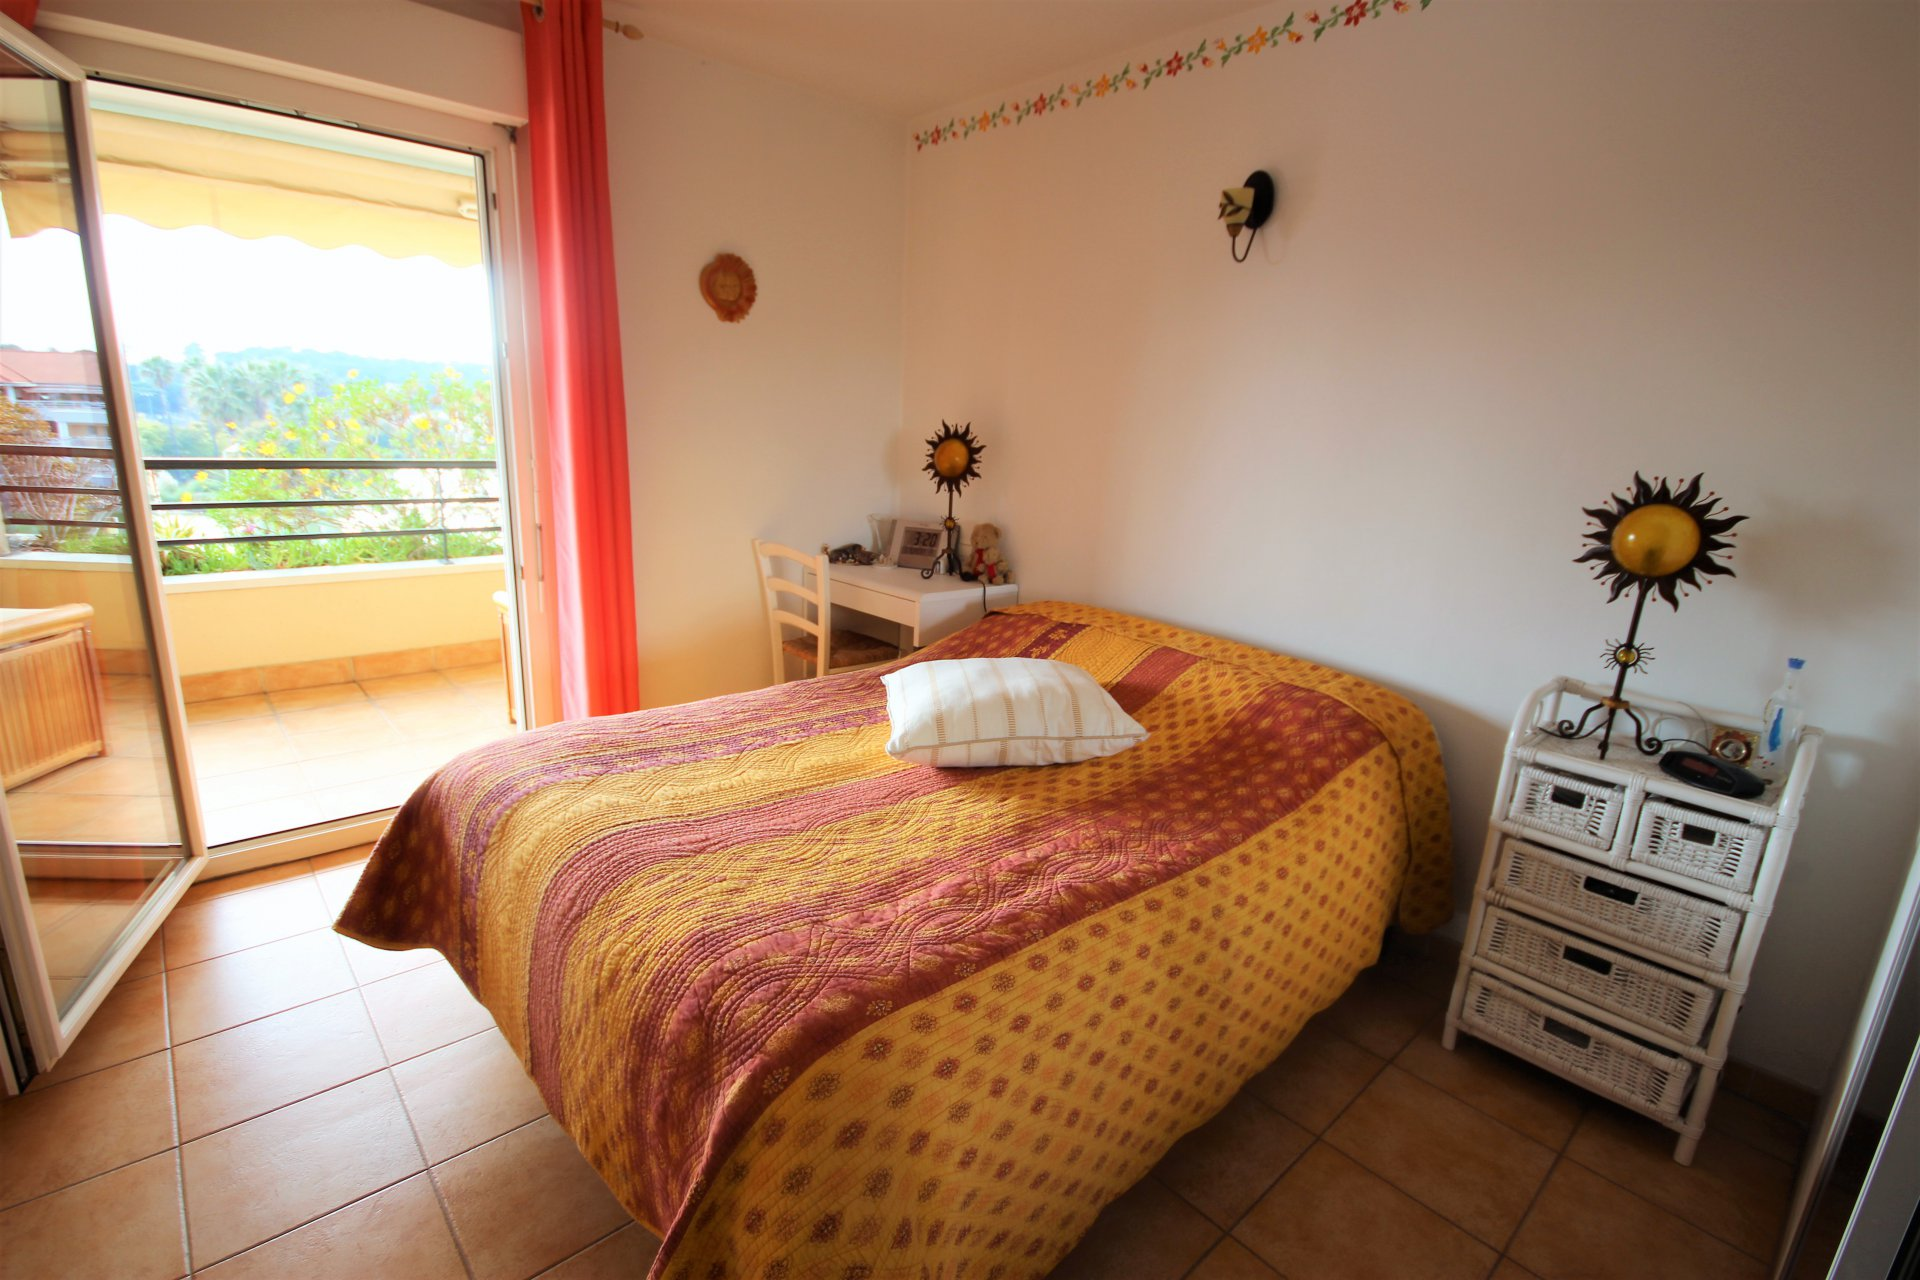 LE CANNET SALE 2 ROOMS IN ABSOLUTE QUIET